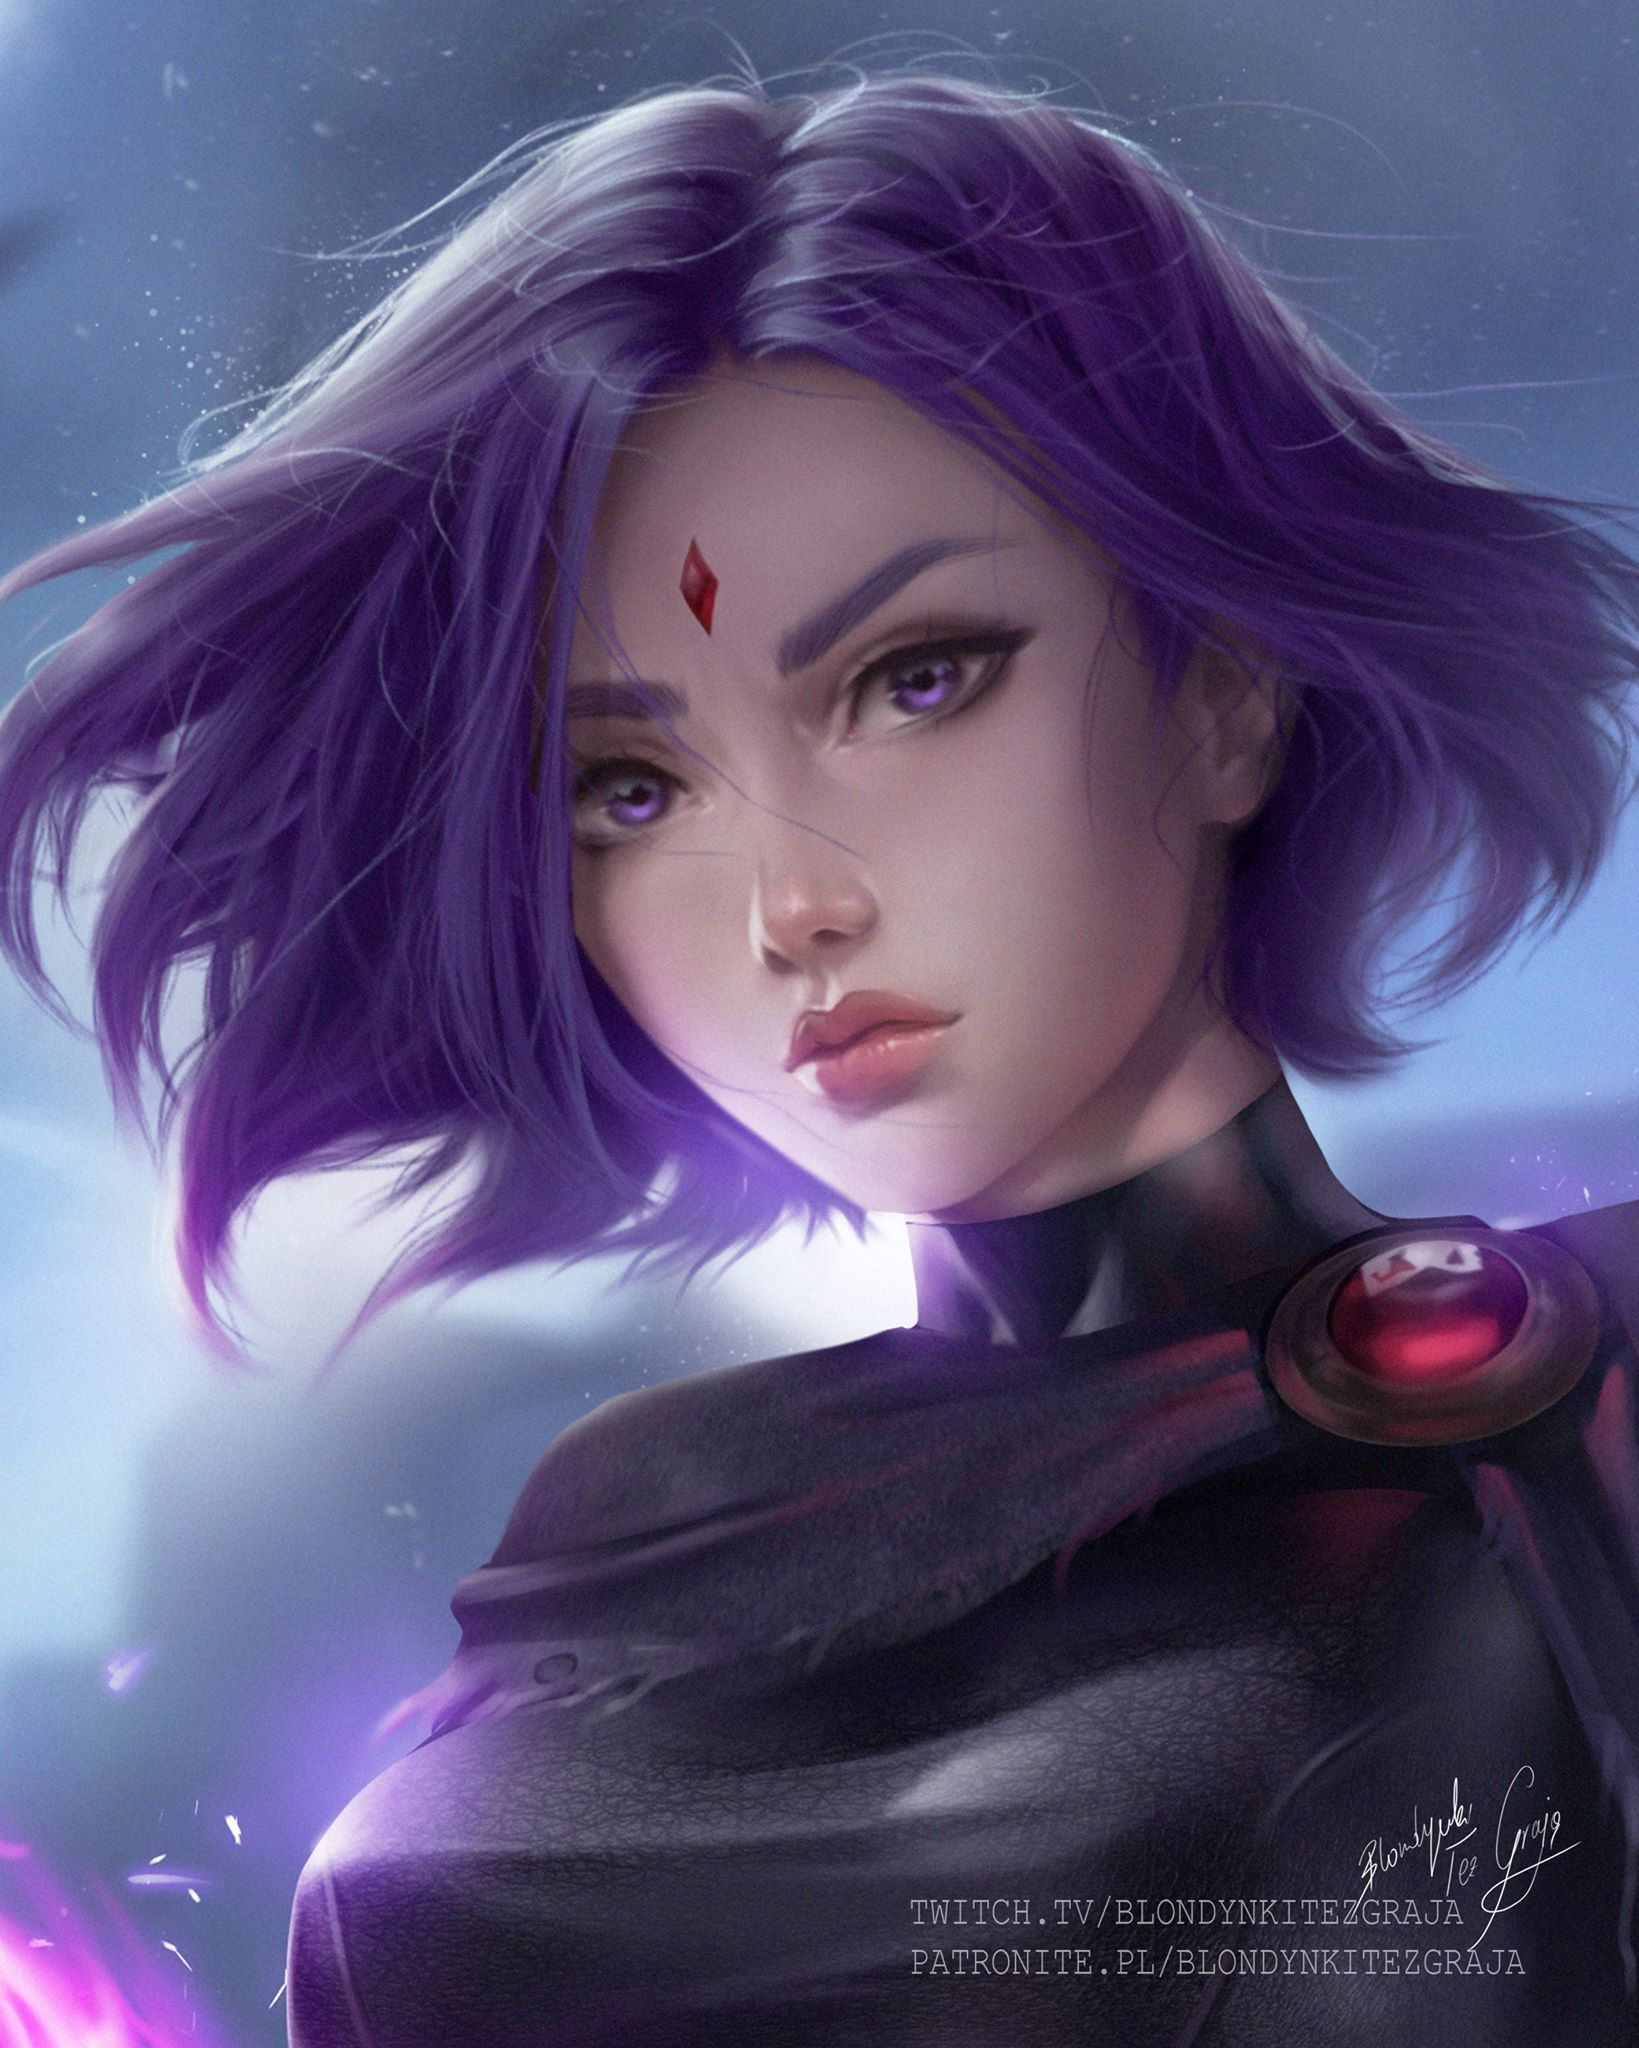 Raven digital art by Blondynkitezgraja